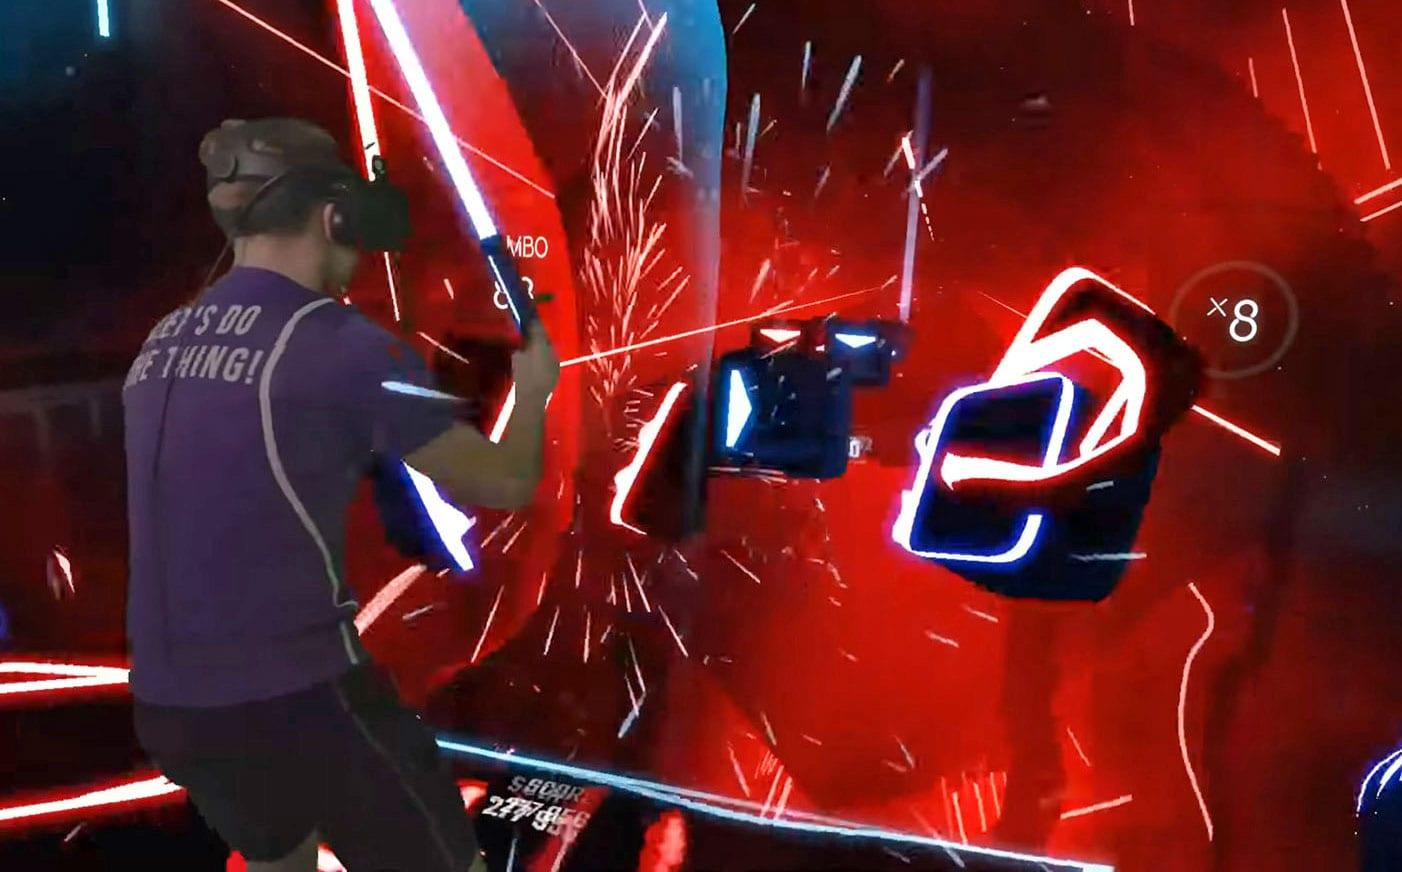 Beat Saber Players Were So Fast That They Broke Steam Vr Engadget Know i can make your hands clap said i can make your hands clap every night when the stars come out am i the only living soul around? beat saber players were so fast that